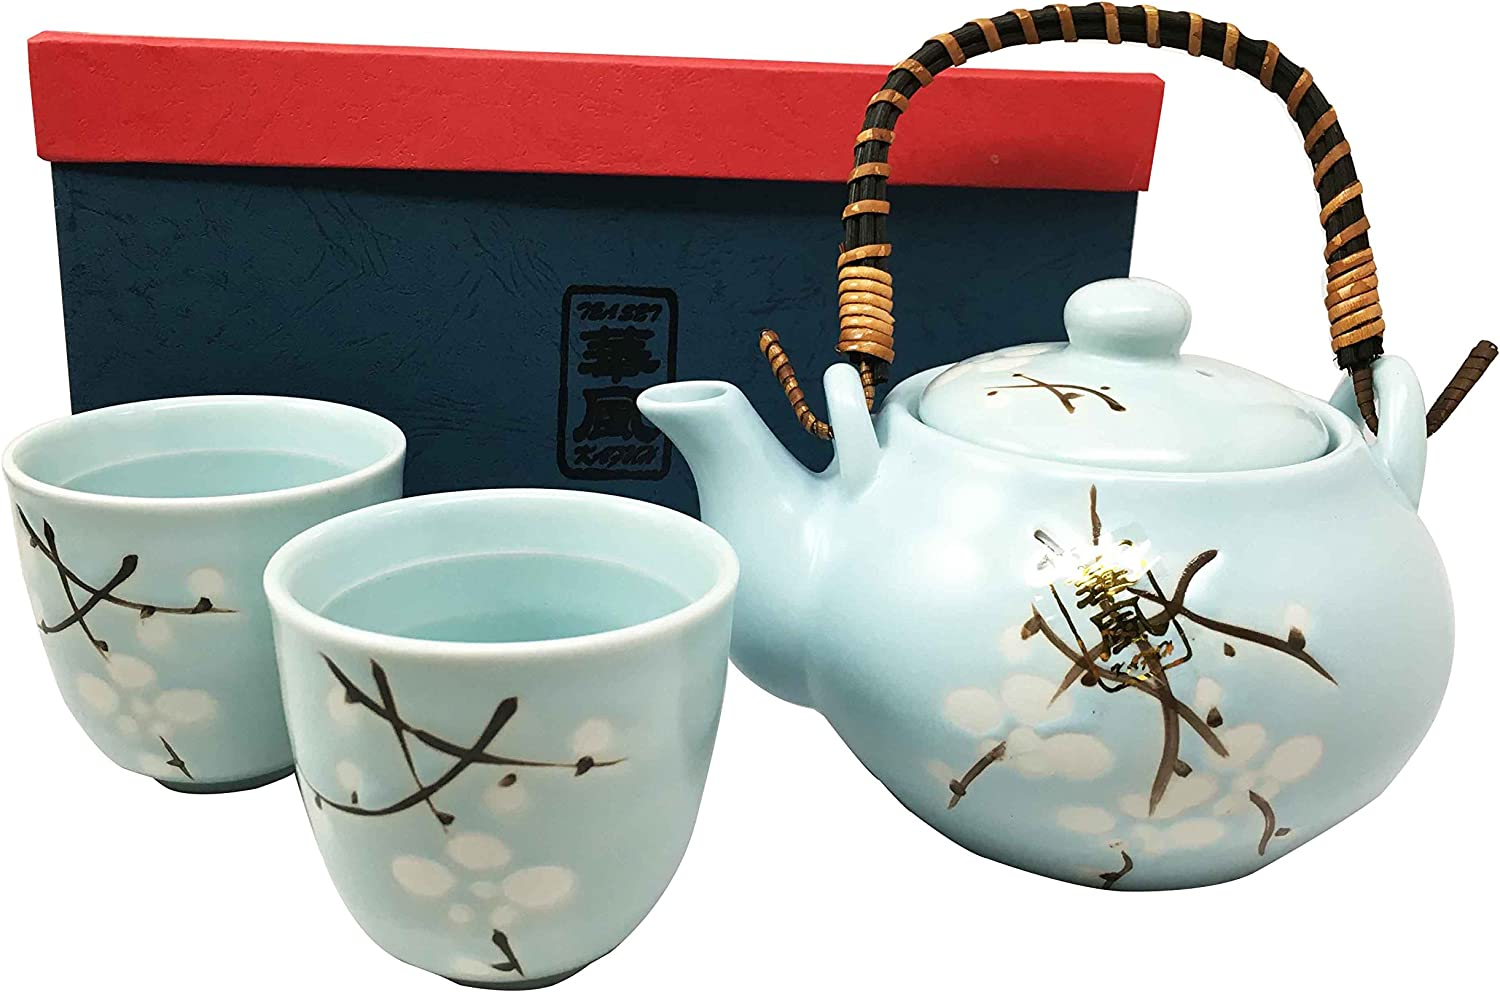 Japanese Design Sky Blue Cherry Blossom Sakura Tea Pot and Cups Set Serves 2 Excellent Home Decor Asian Living